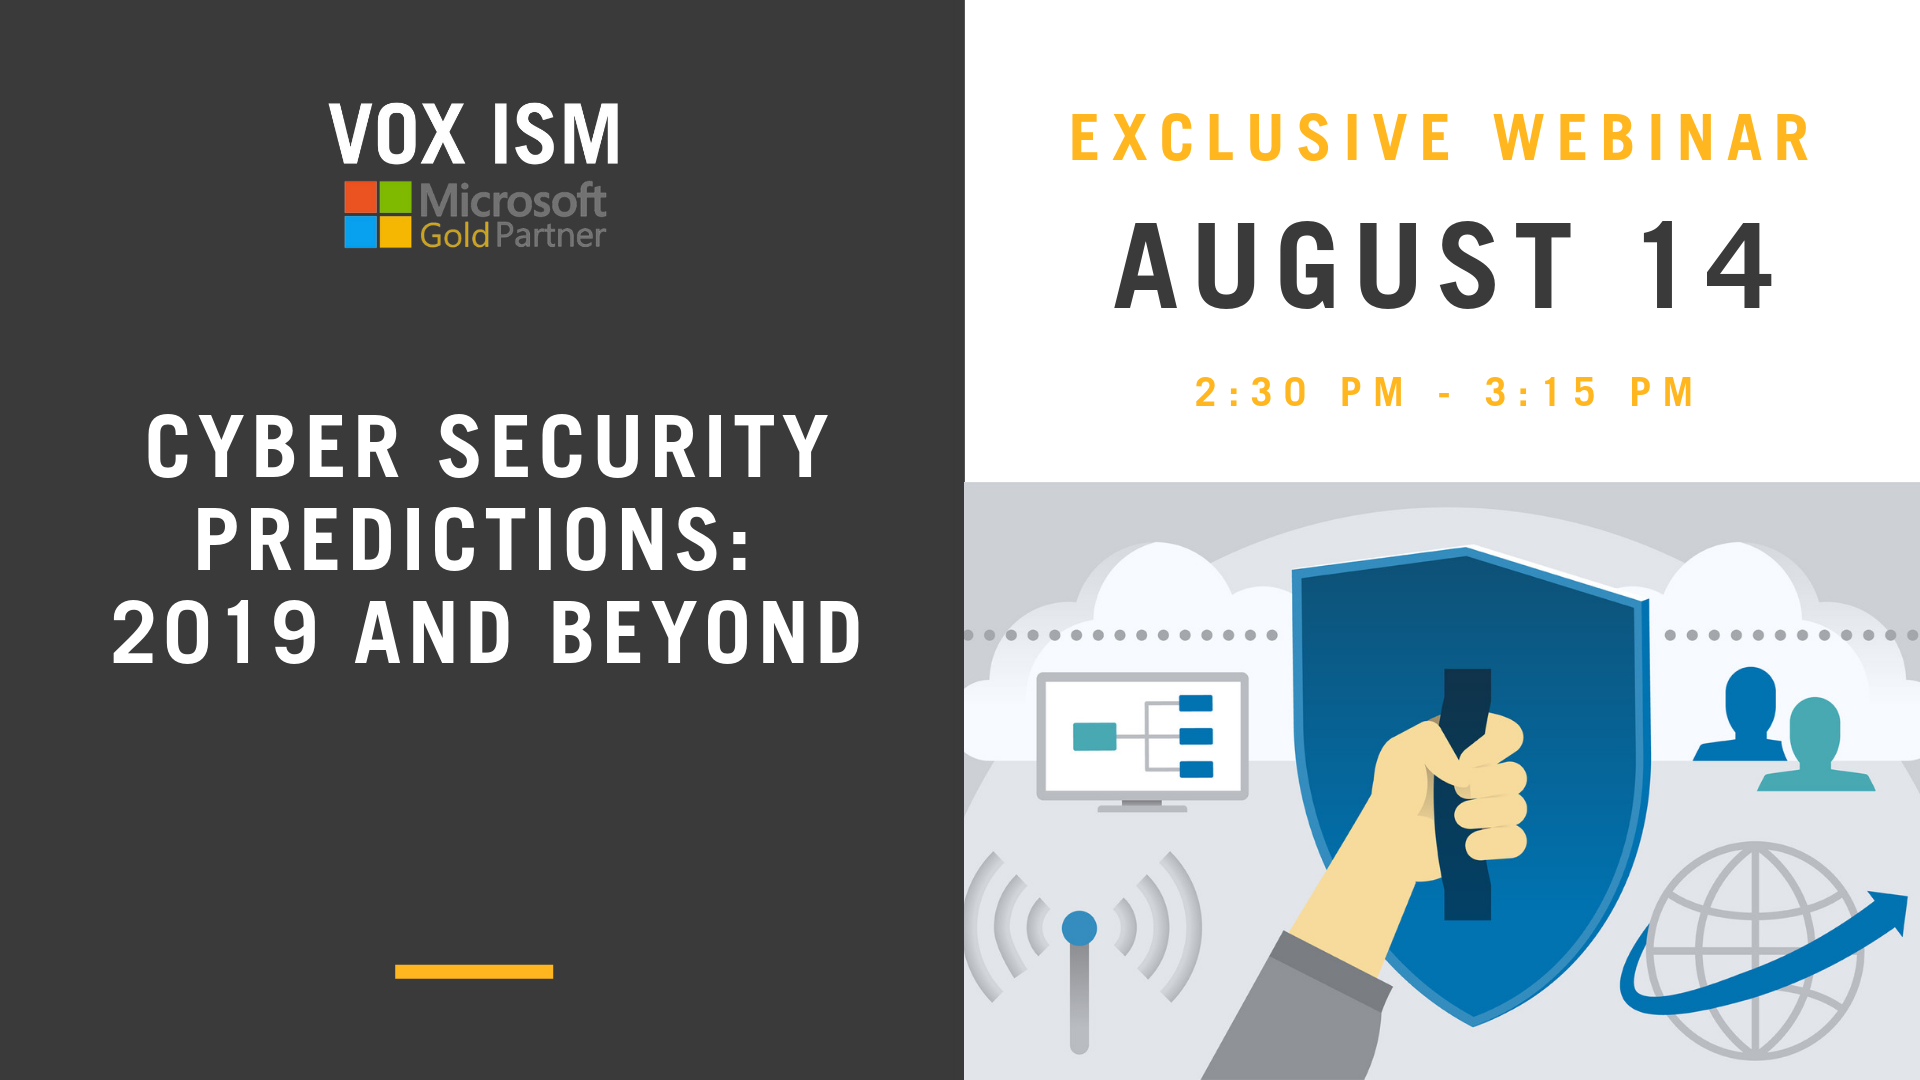 Cyber Security Predictions: 2019 and Beyond - August 14 - Webinar - VOX ISM